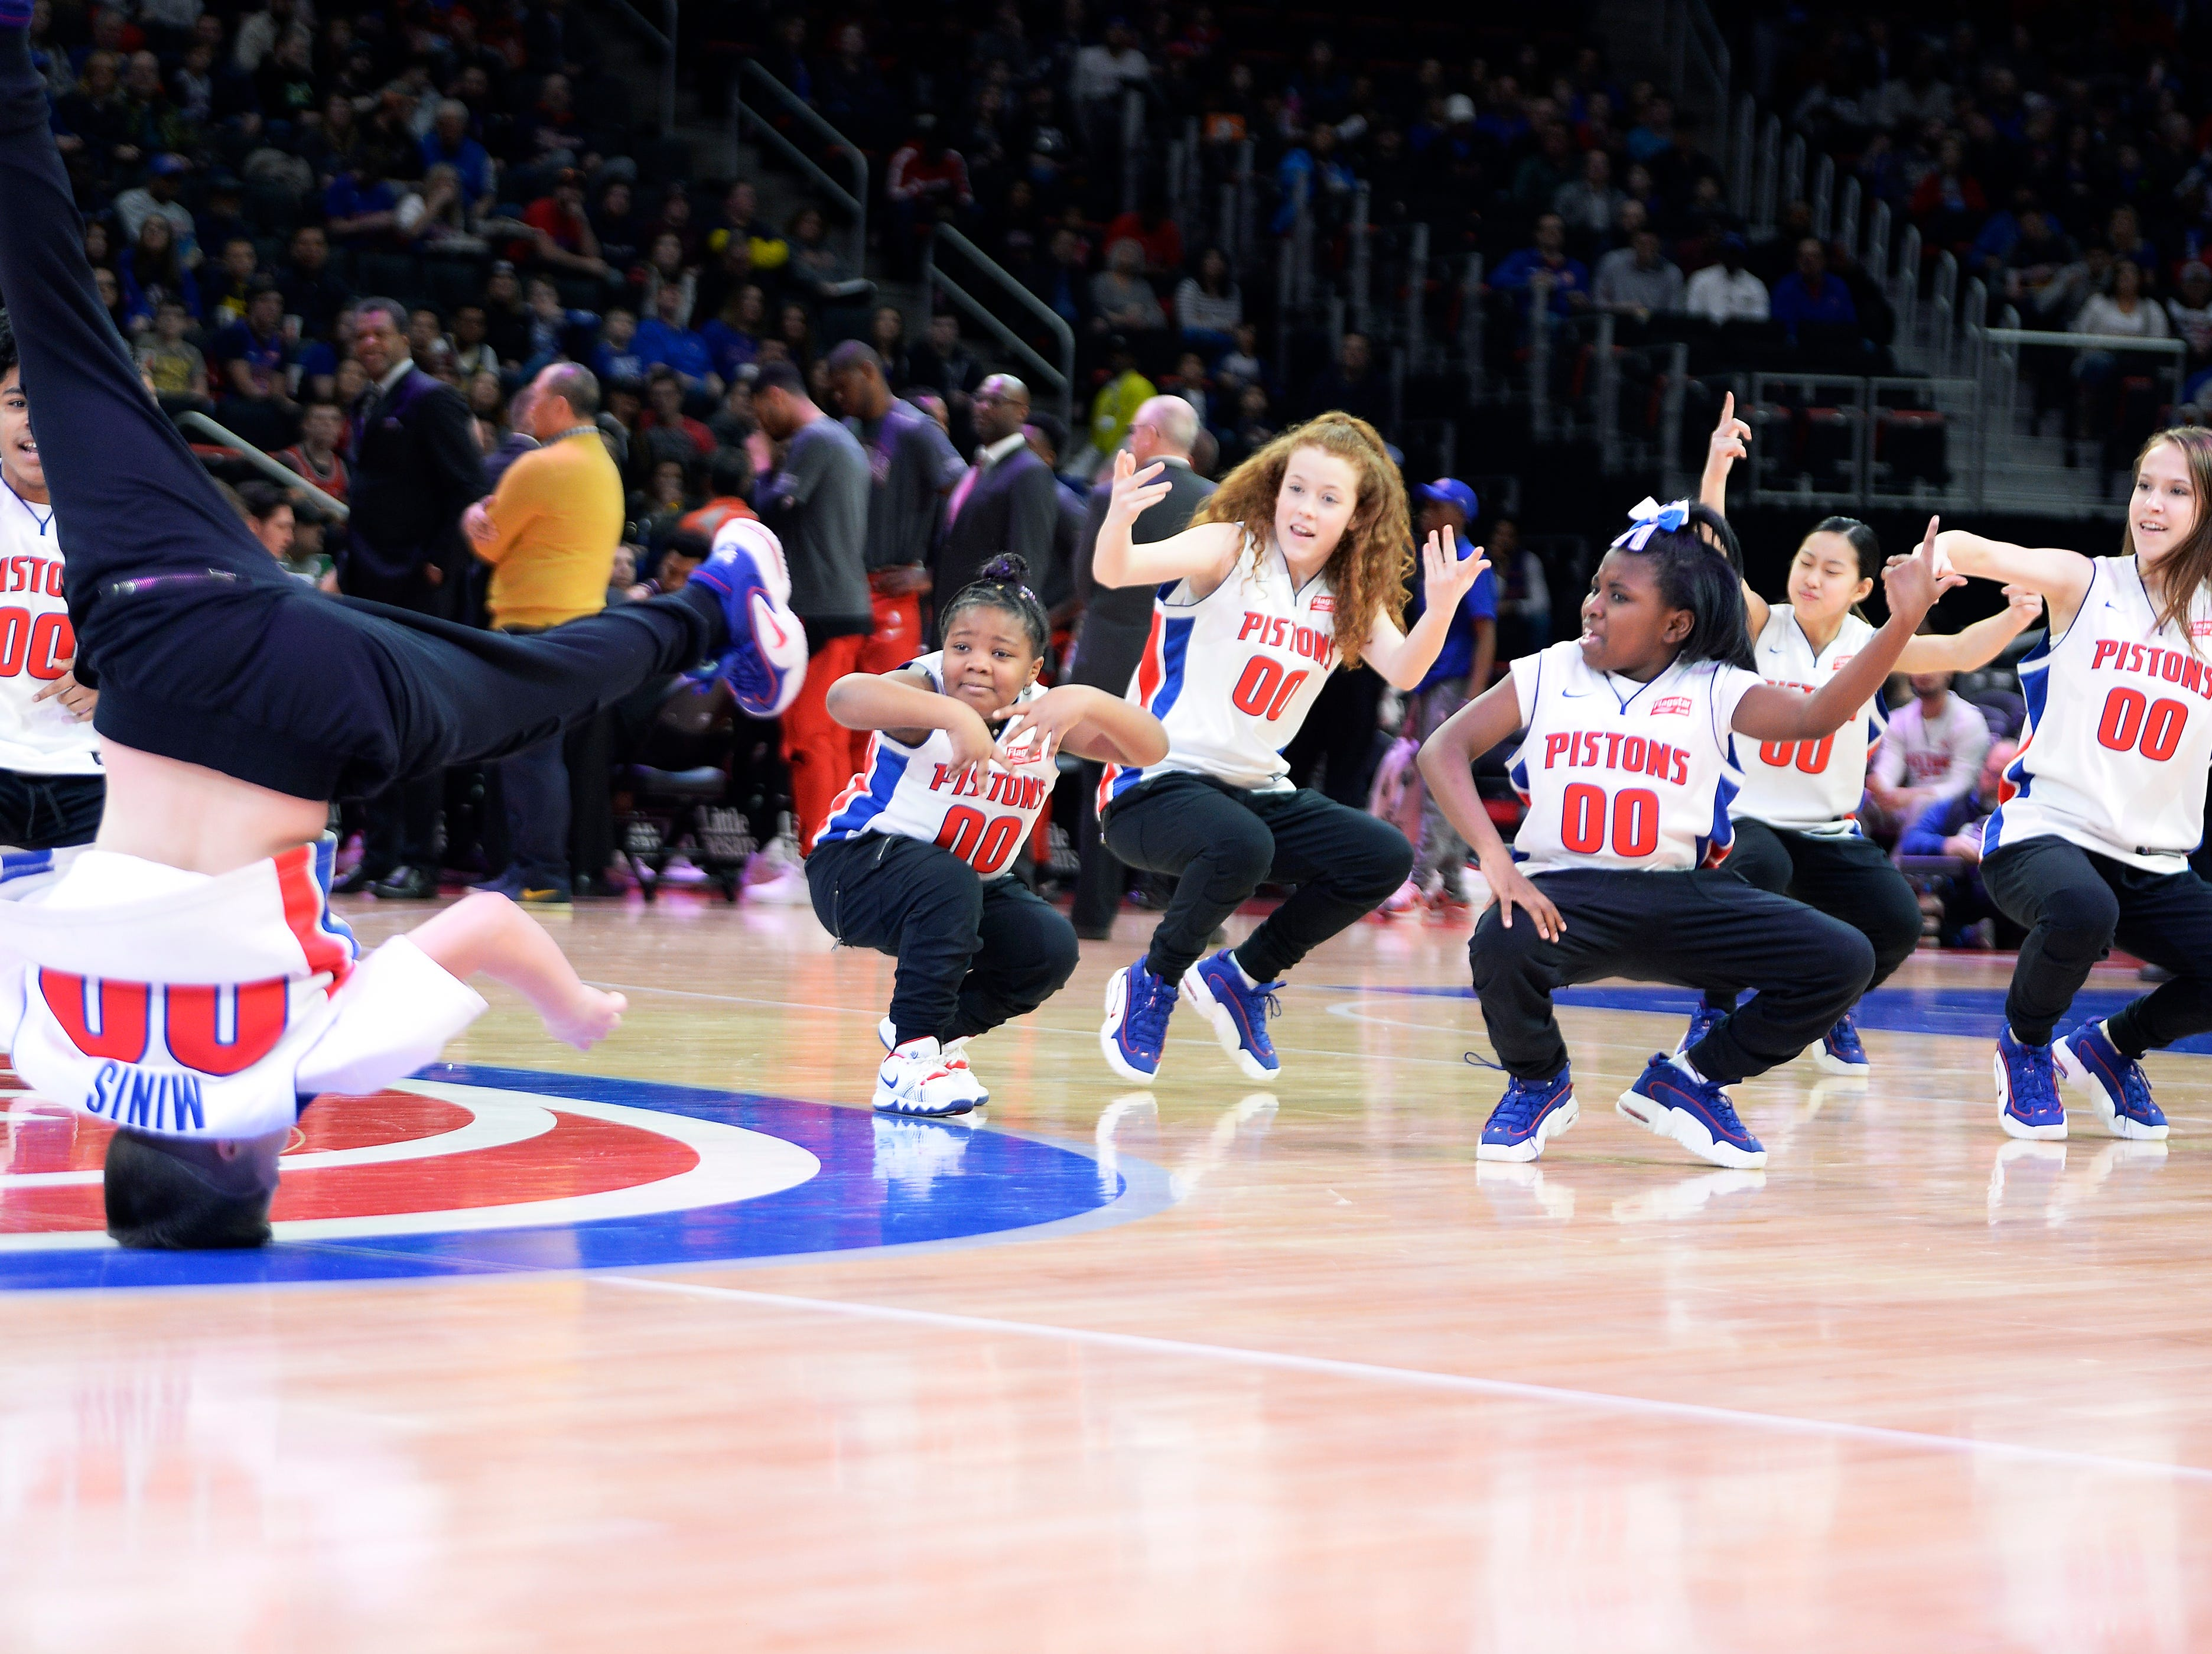 Pistons Minis Dancers perform in the second quarter on Kid's Day.